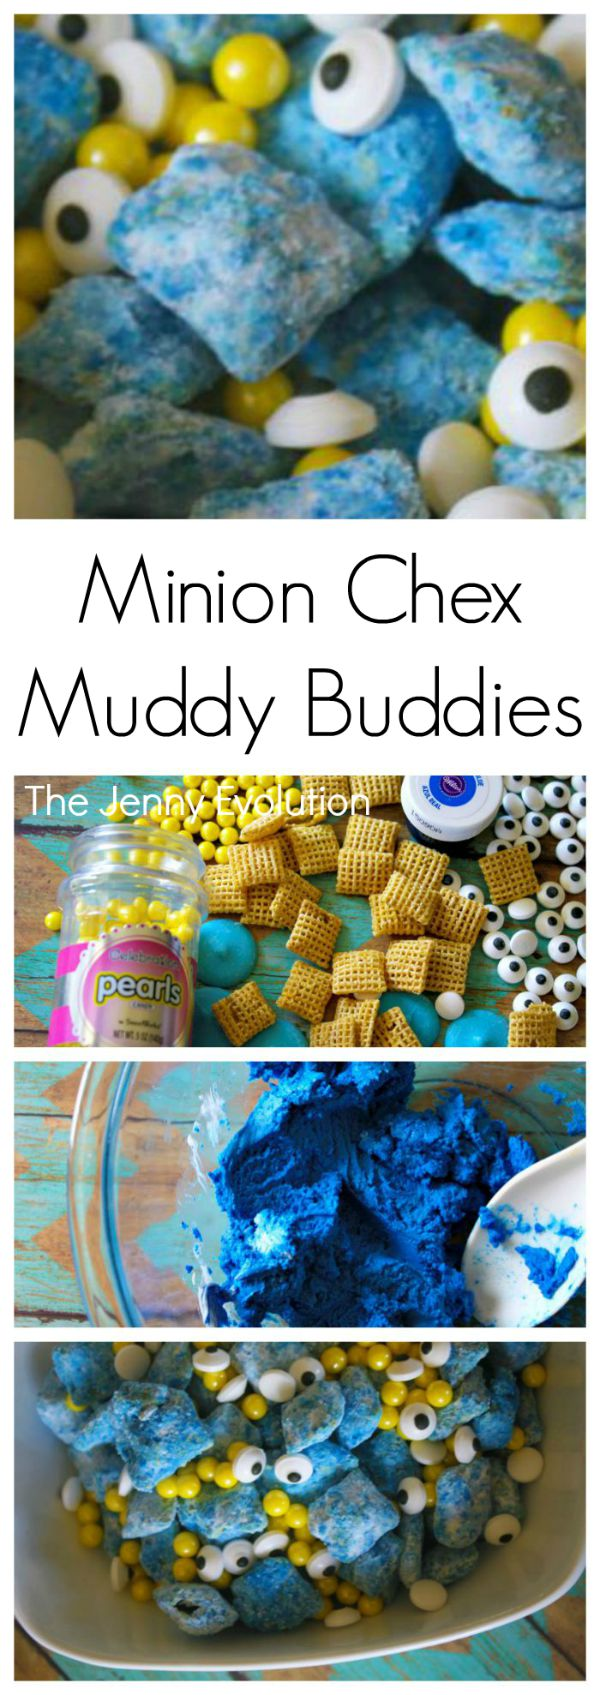 Chex Muddy Buddies Minion Recipe | The Jenny Evolution